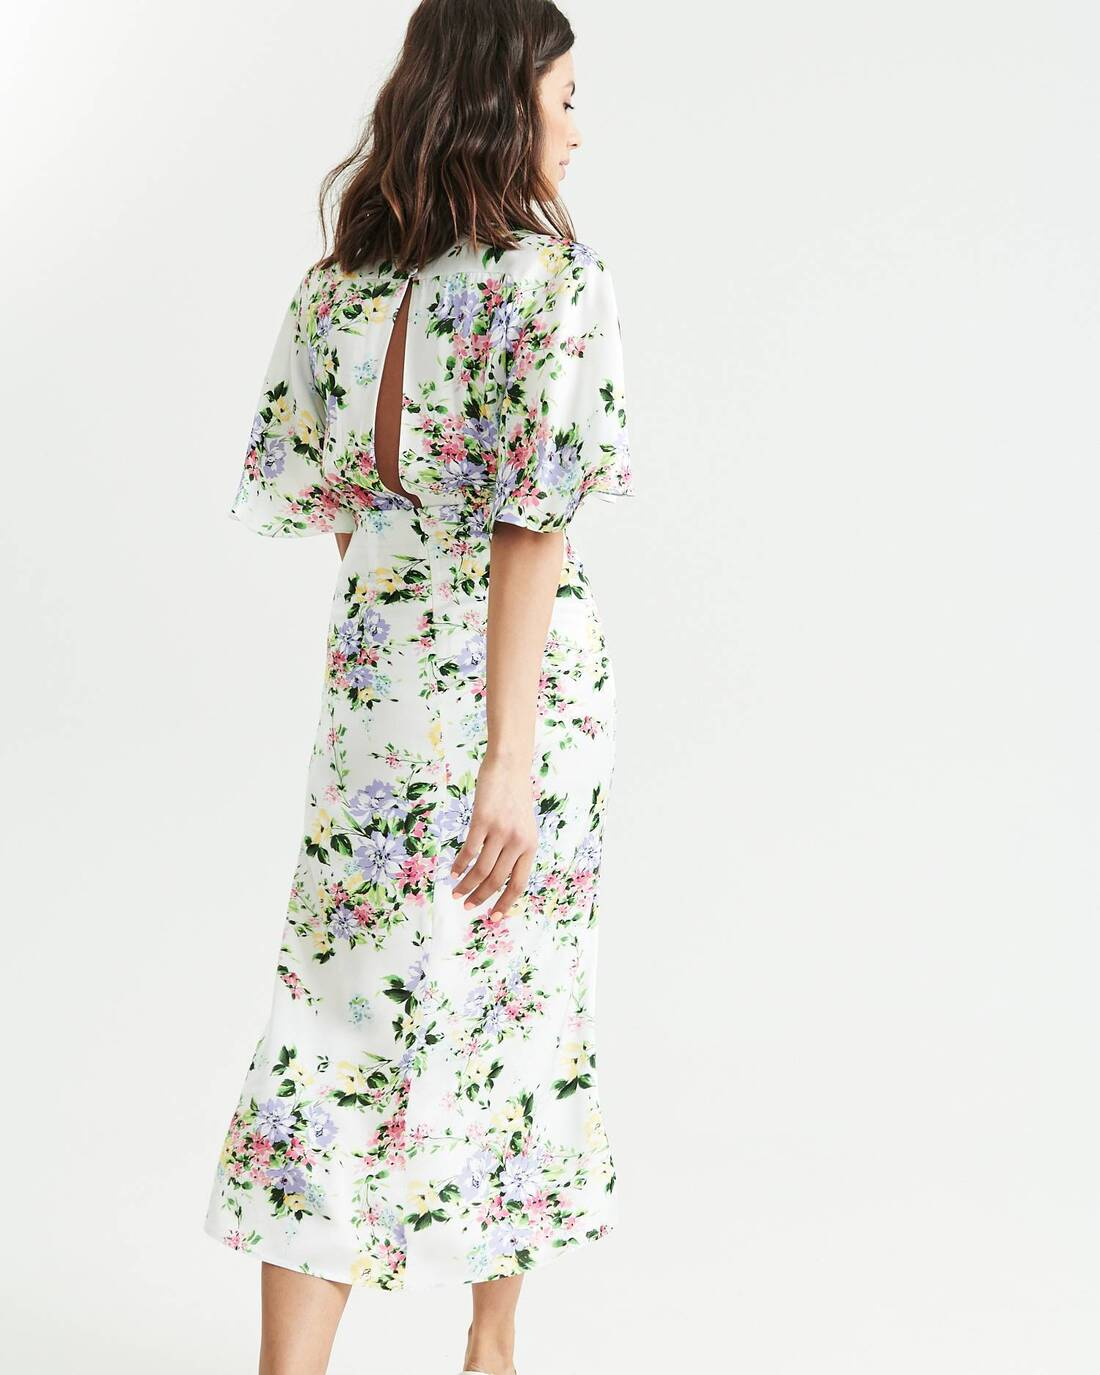 Floral print tea dress with flared sleeves